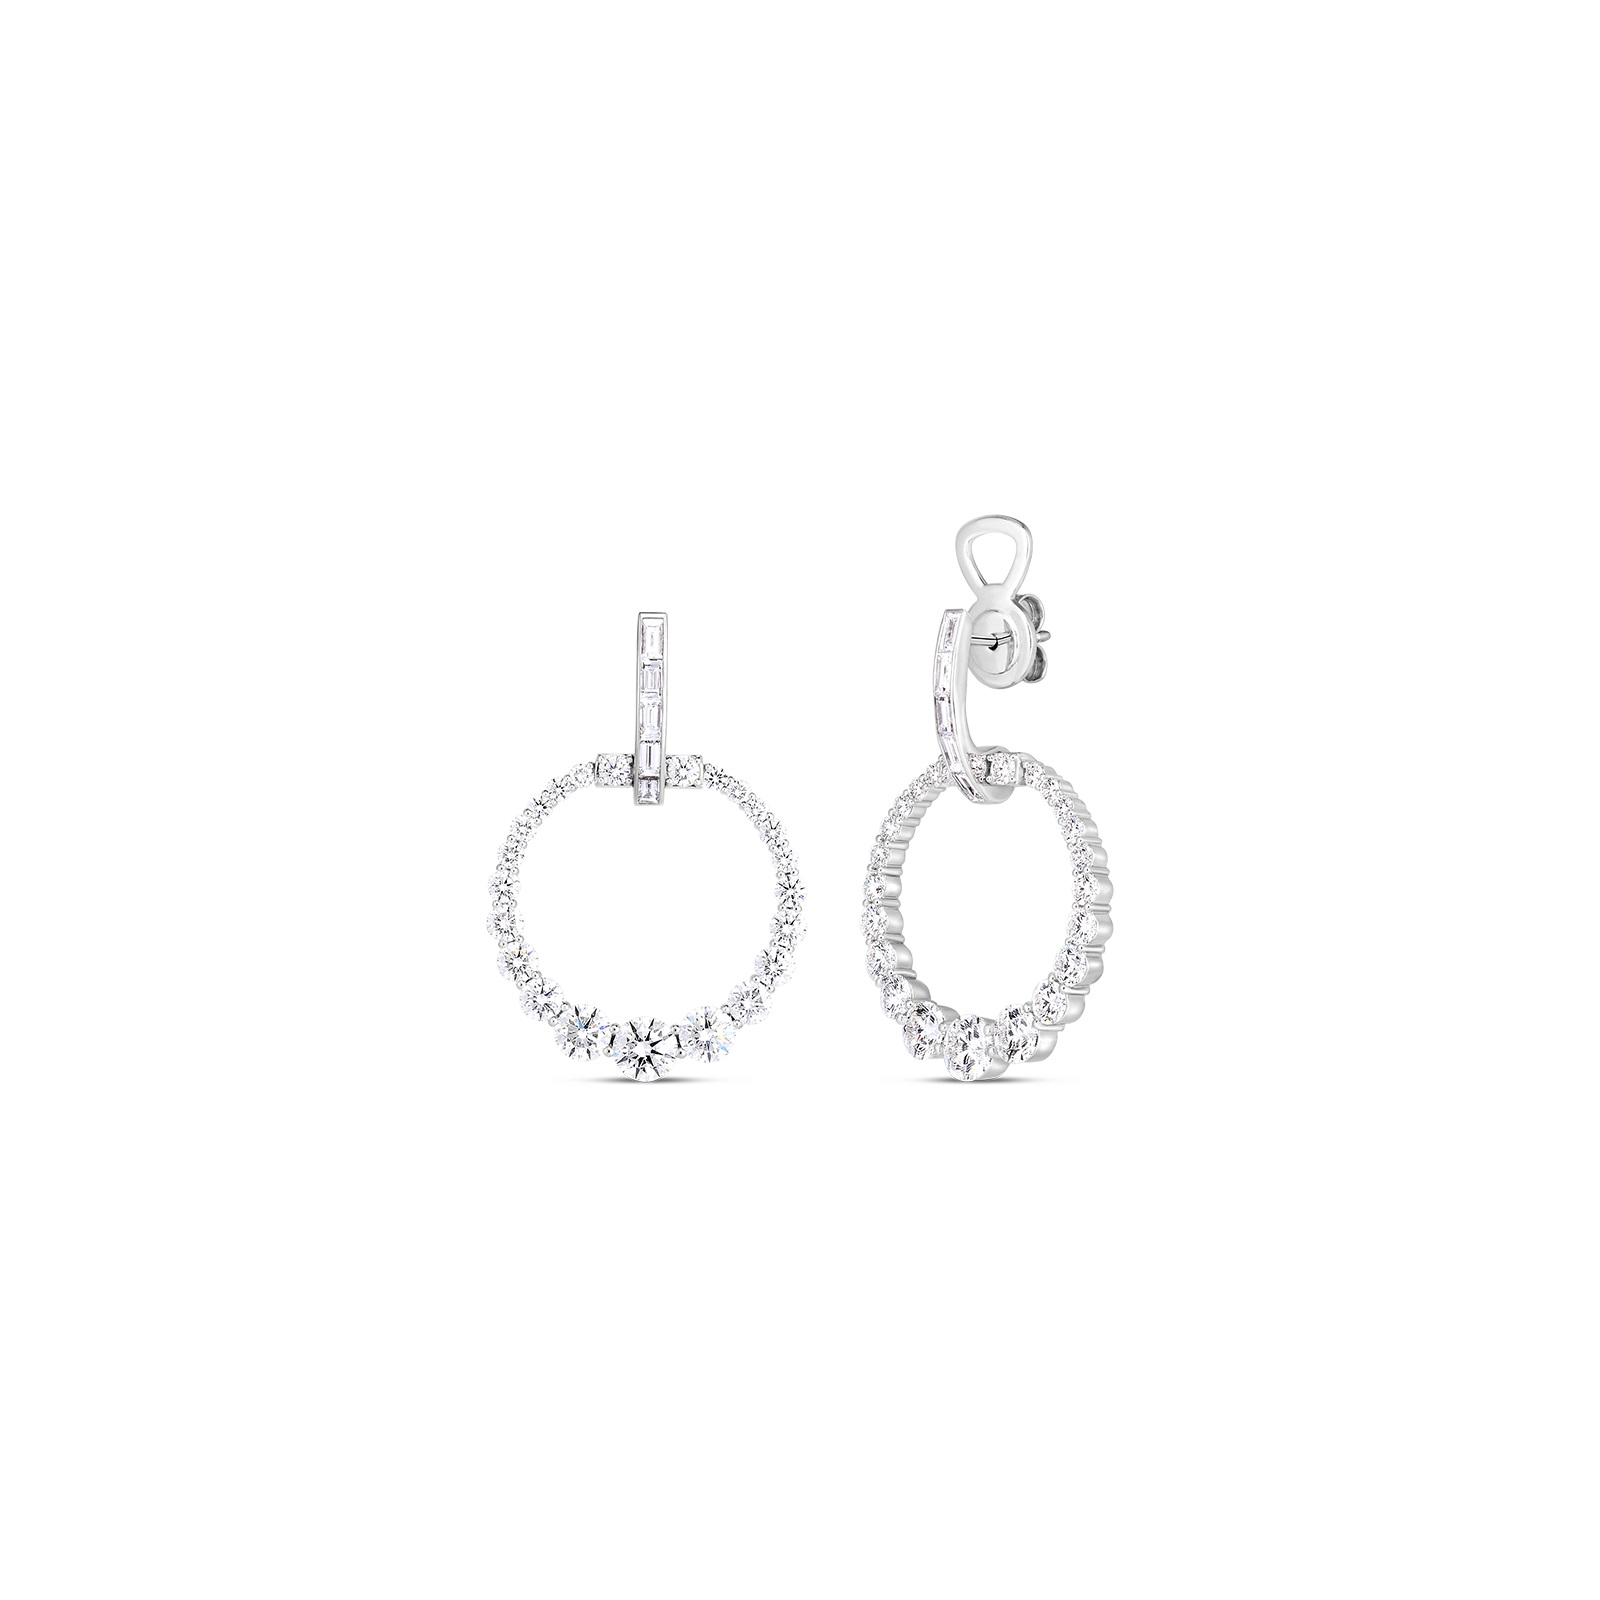 Roberto Coin 18K White Gold 4.65cts  Diamonds Gold Earrings with Stones 8882950AWERX